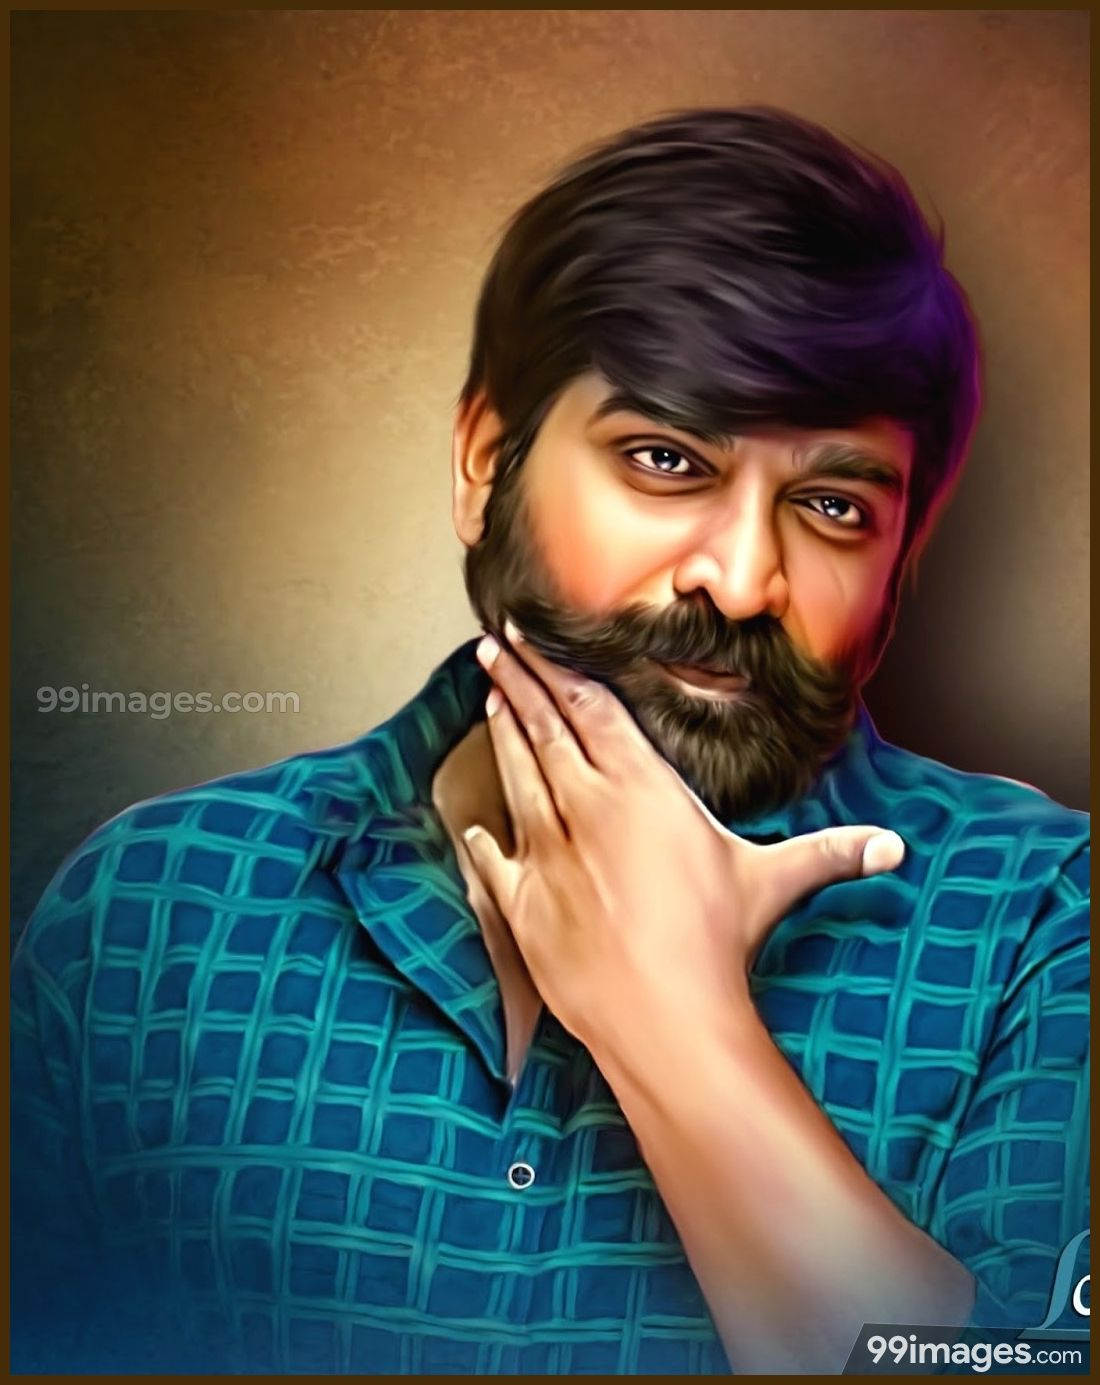 Vijay Sethupathi Best Hd Photos 1080p 7516 Vijaysethupathi Makkalselvan Actor Kollywood Hd Wallpaper Android Hd Photos Android Photography